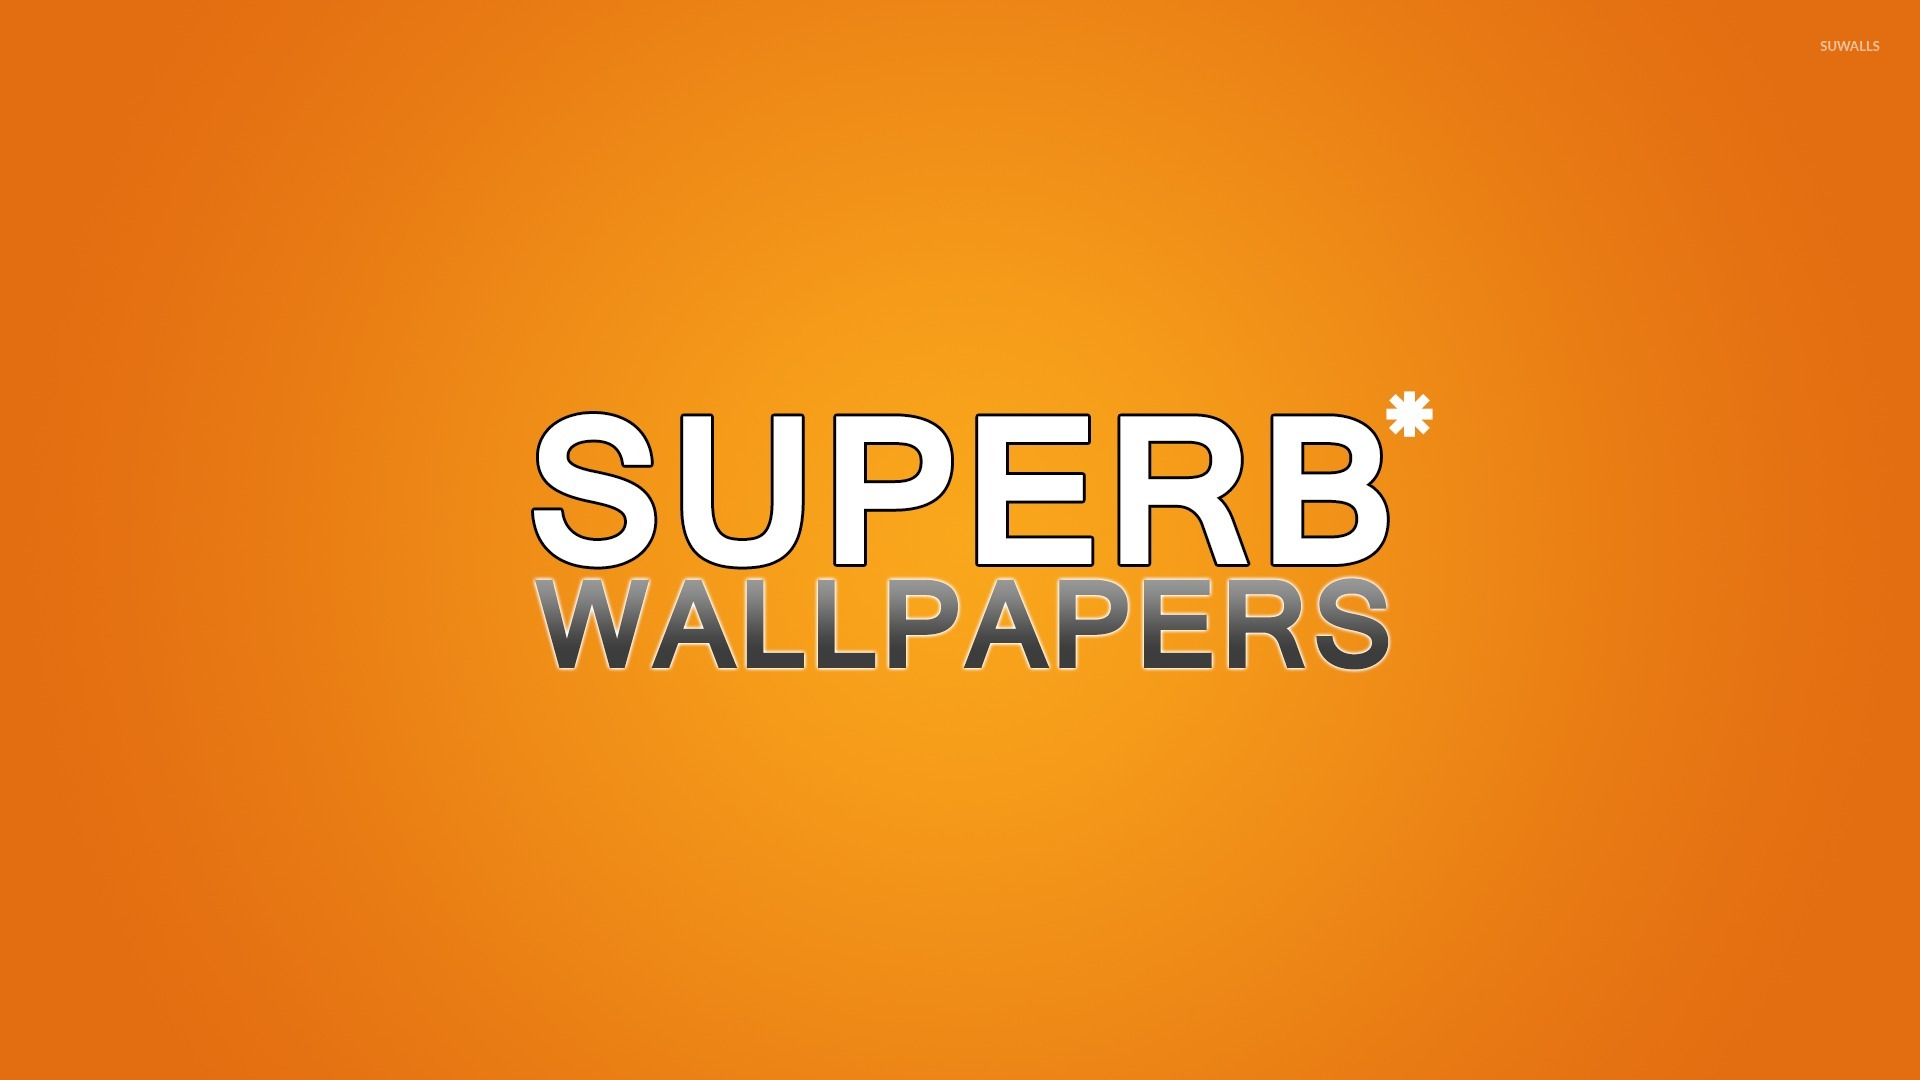 Superb Wallpapers Desktop and mobile wallpaper Wallippo 1920x1080